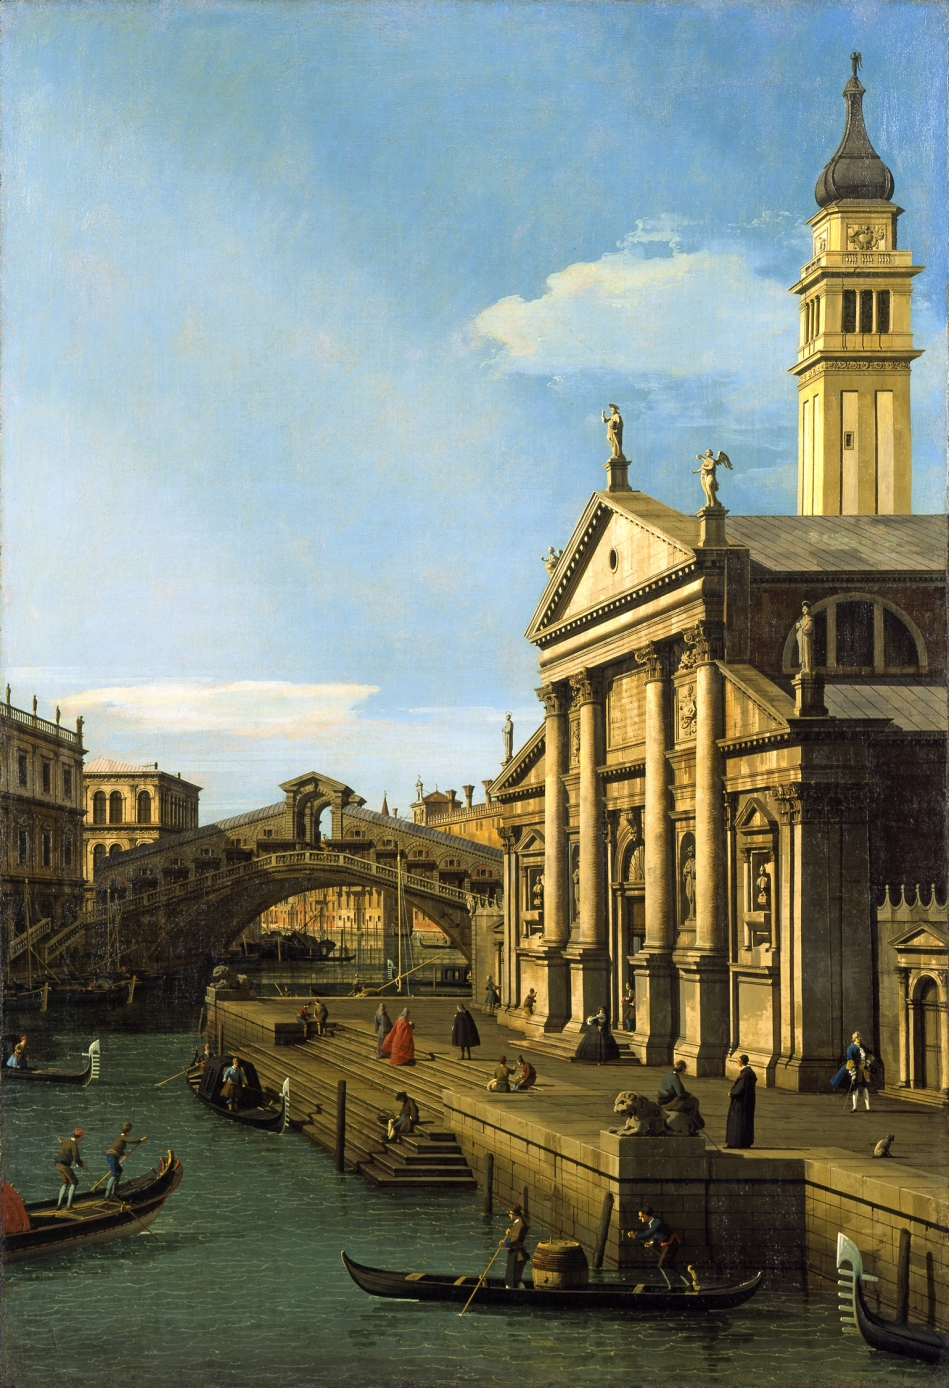 Canaletto, Capriccio, The Rialto Bridge and the Church of S